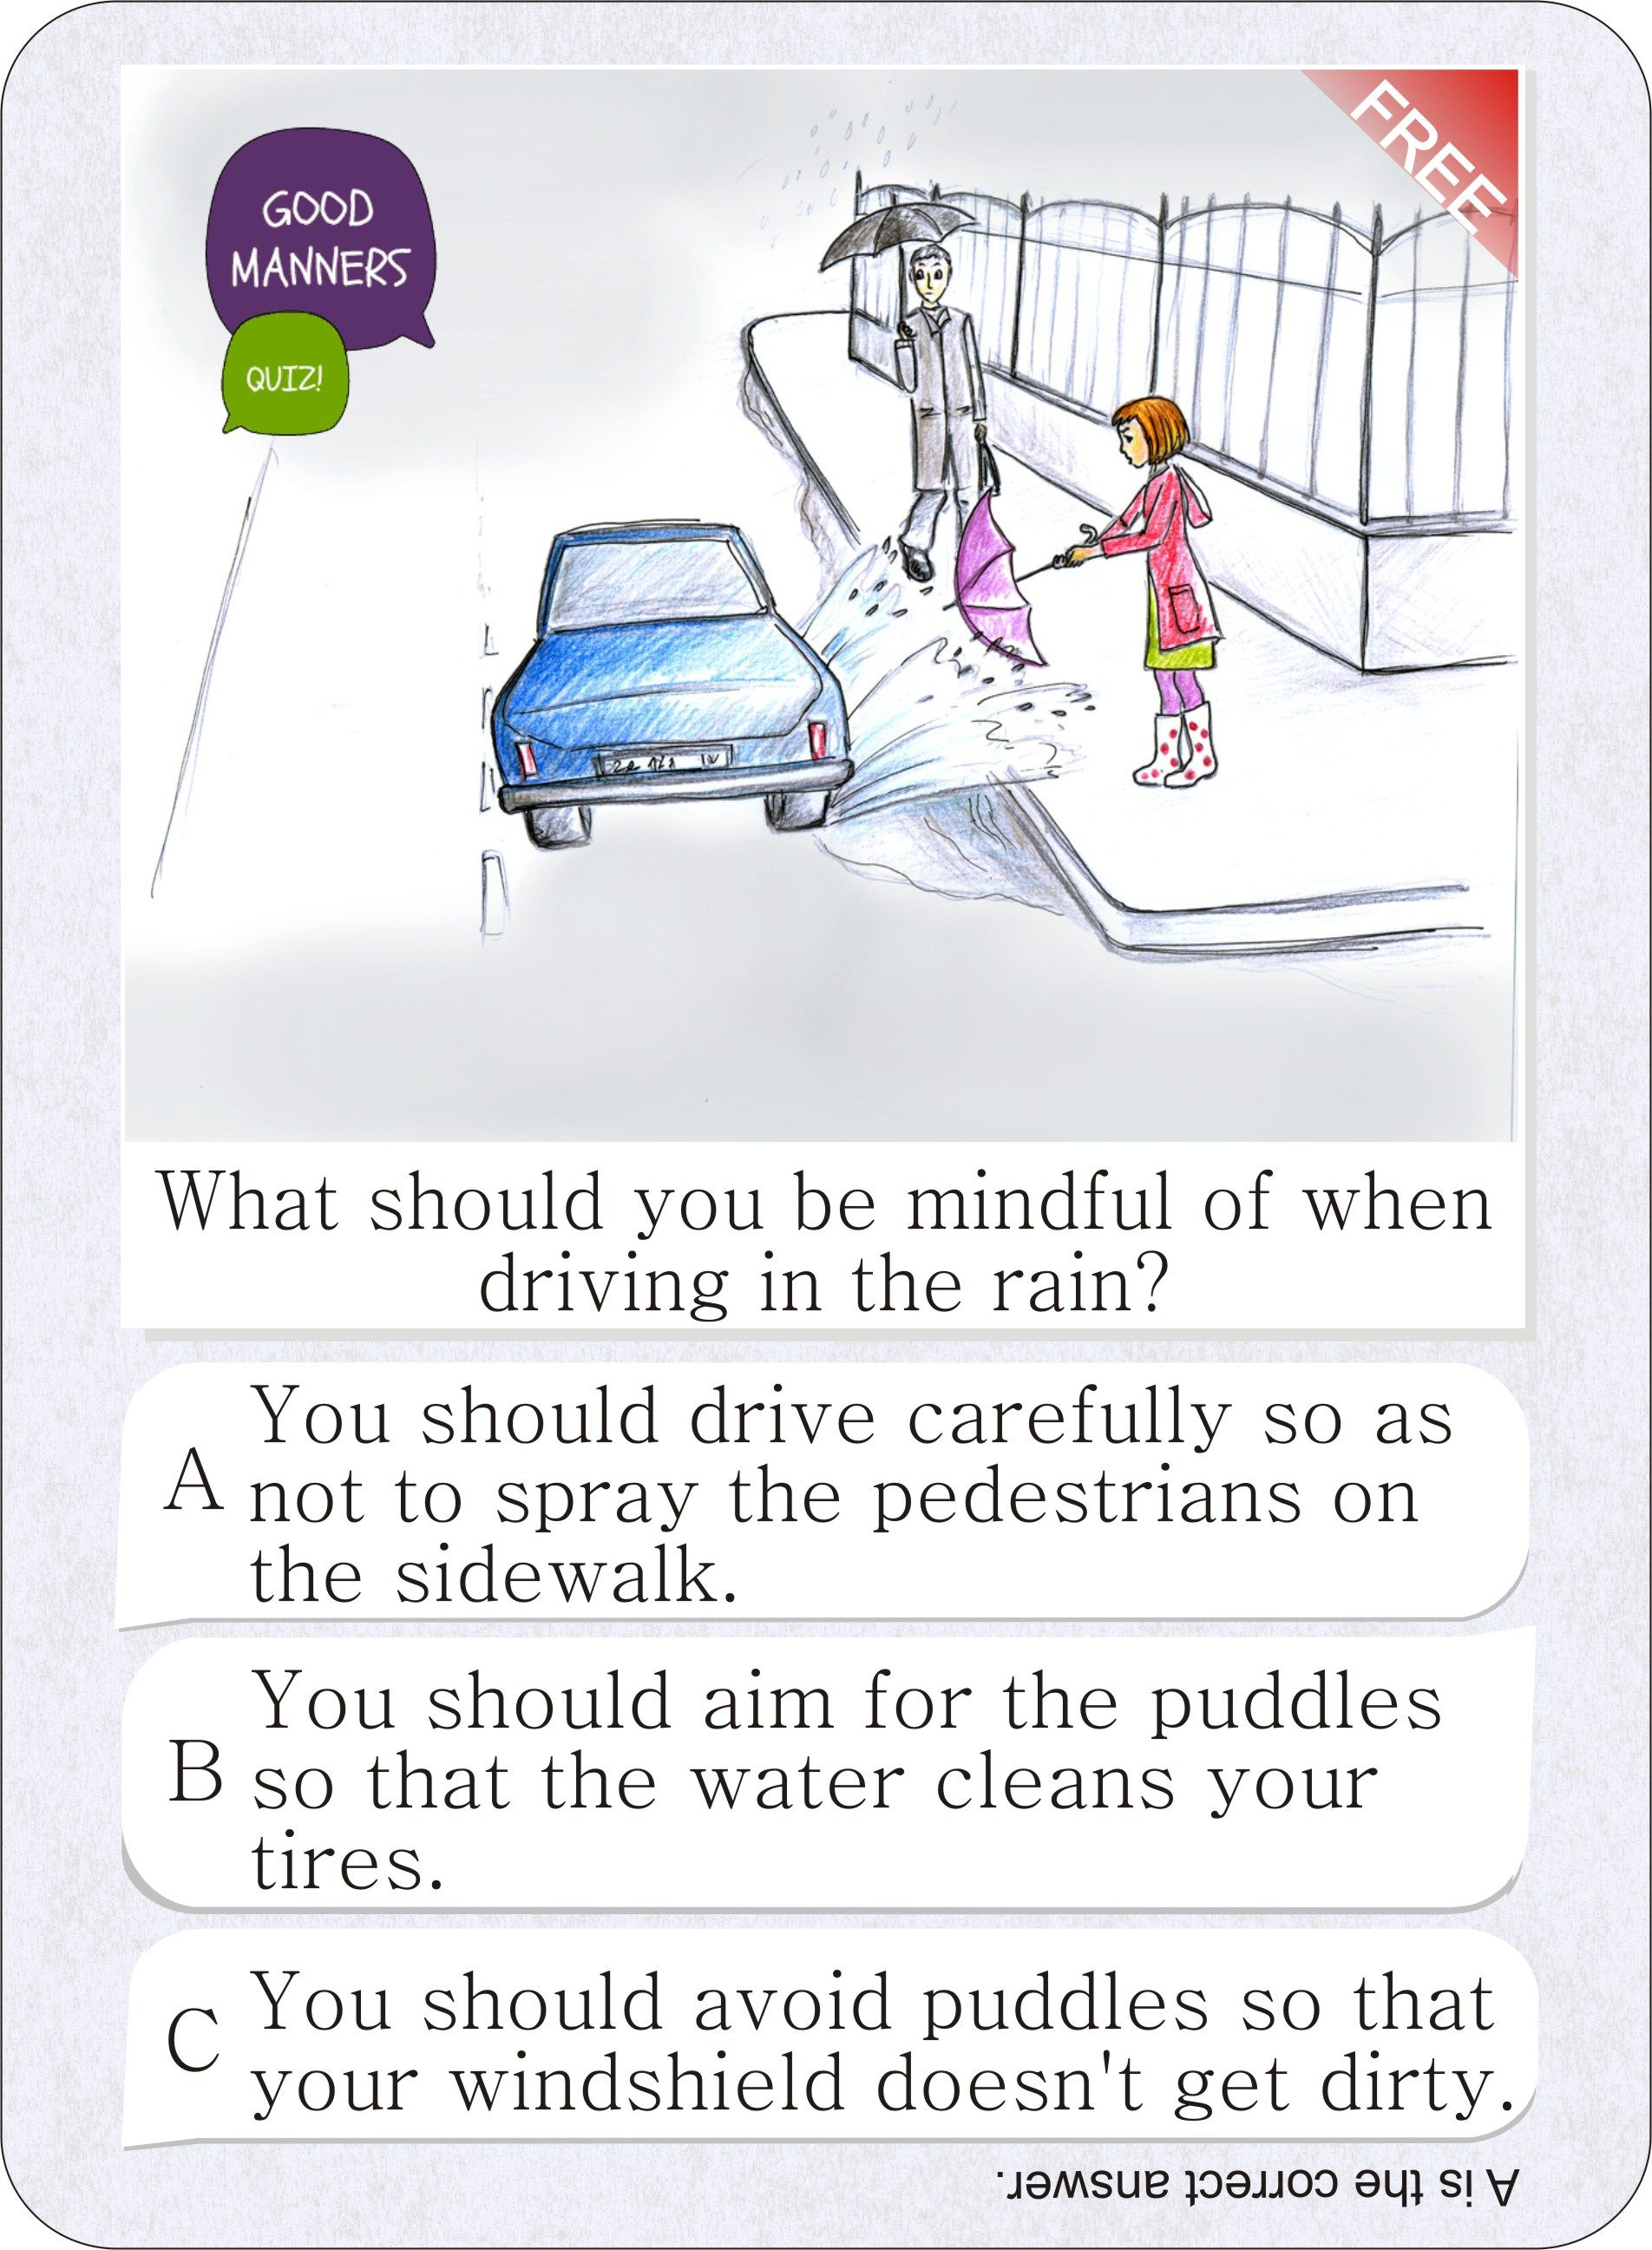 check out the new educational game for kids good manners quiz check out the new educational game for kids good manners quiz on itunes